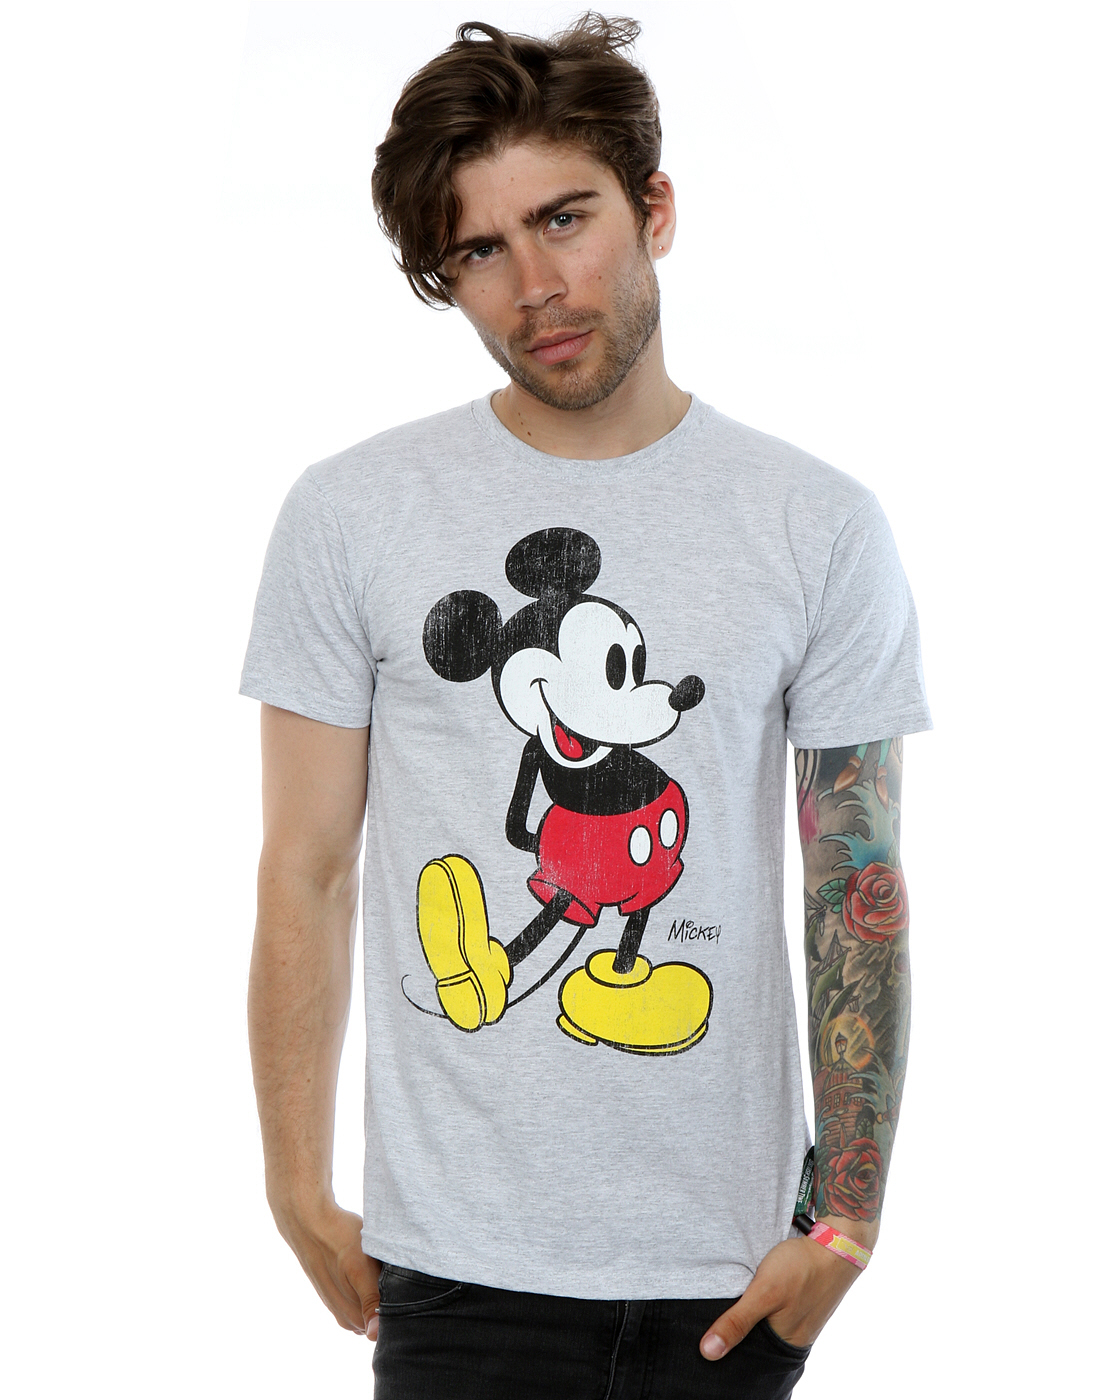 Plus Size Mickey Mouse Clothing: Dresses & More | TorridFree Shipping To Stores · Mobile Friendly.